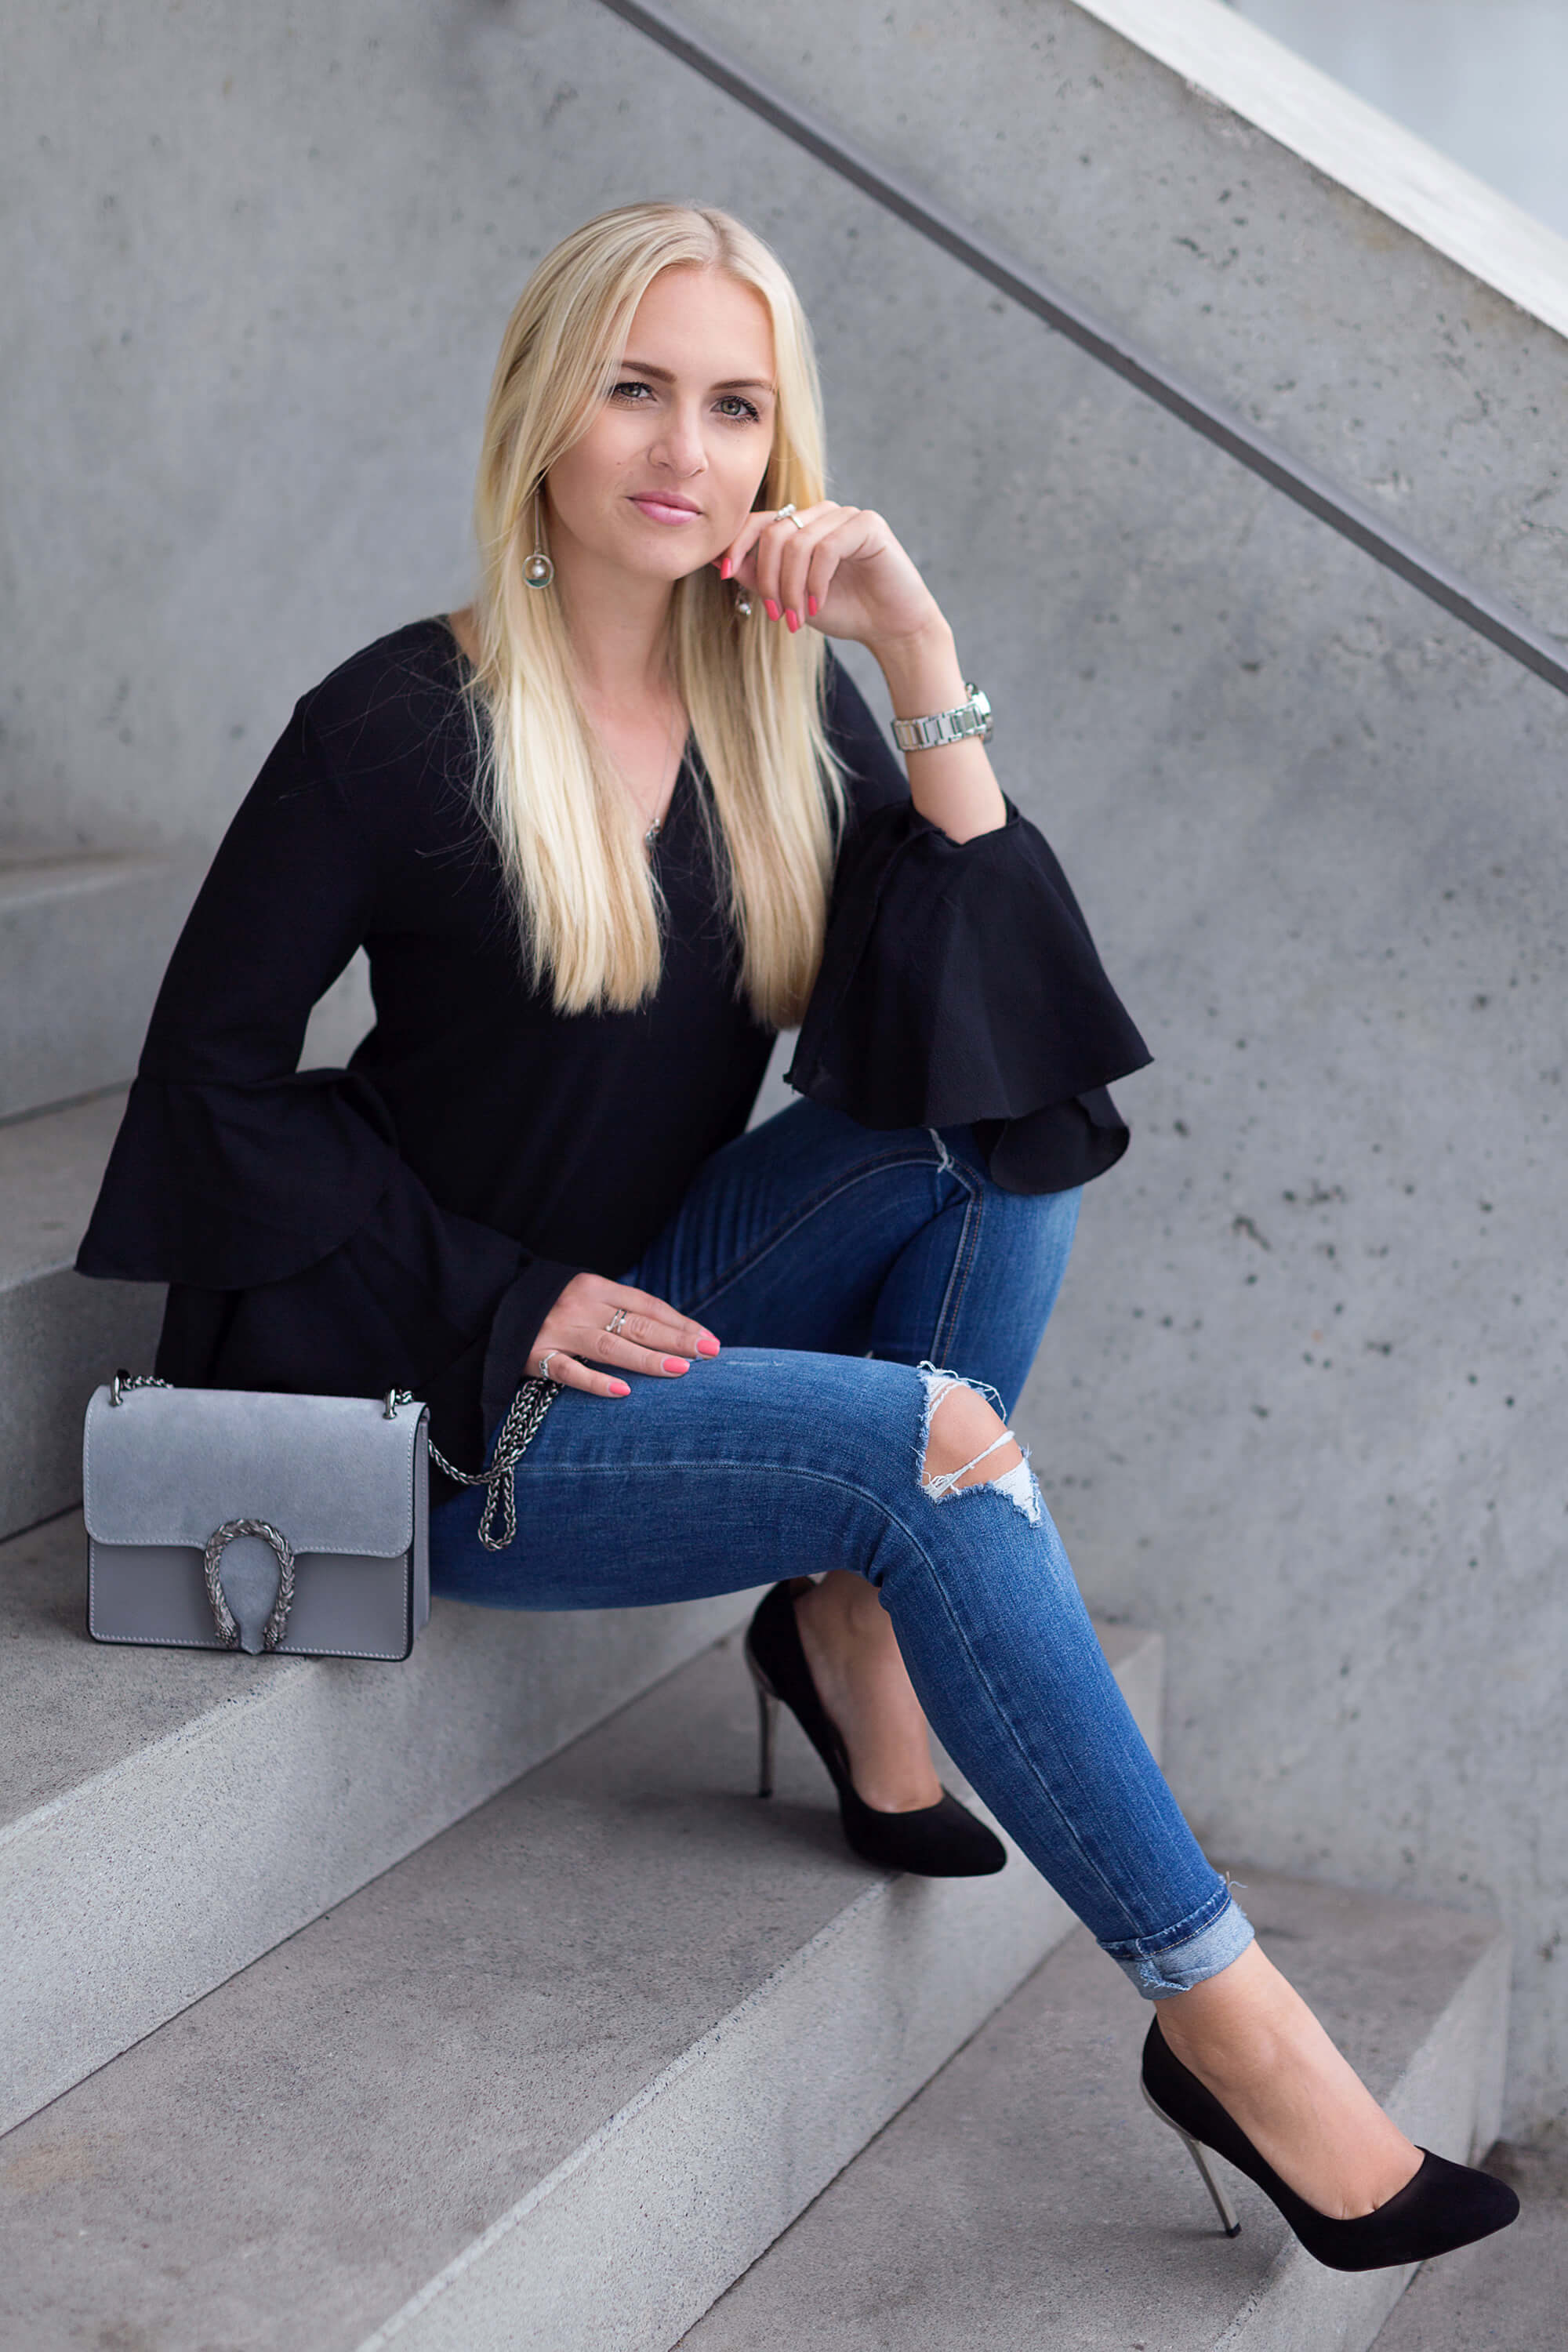 Volant Look richtig kombinieren Fashion Blog Katefully